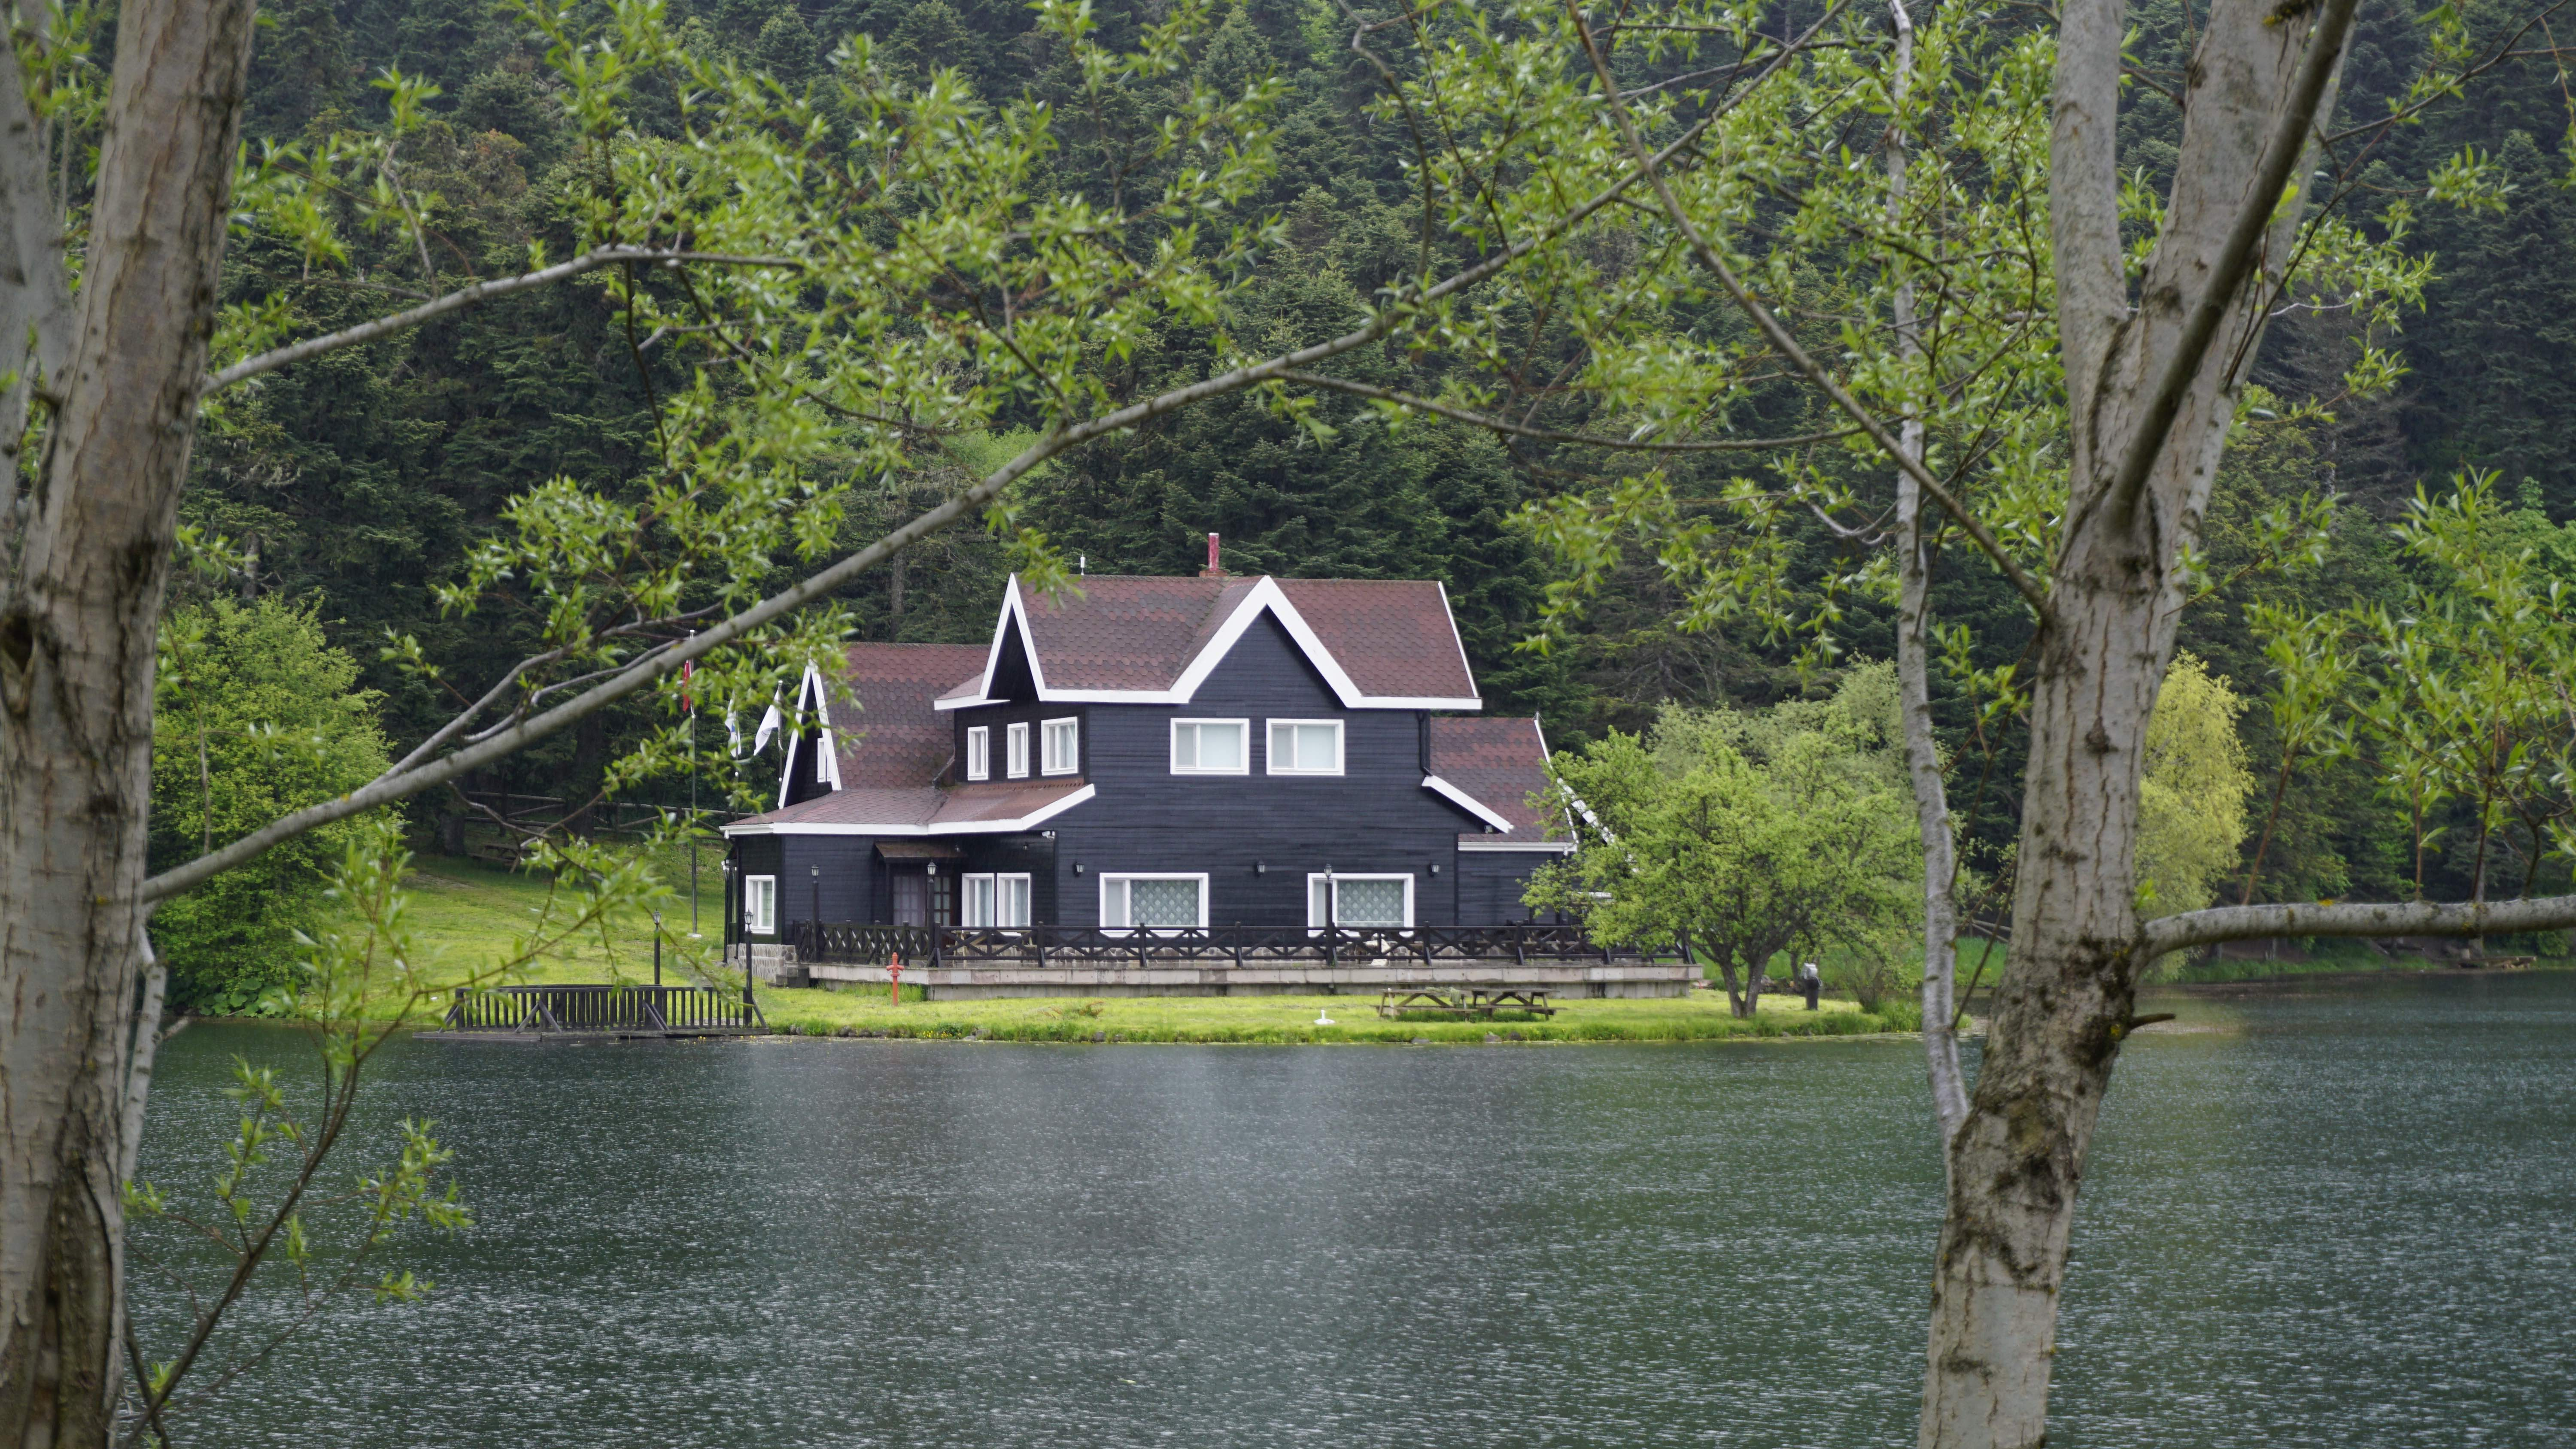 5 Questions to Ask Before Buying a Lake House